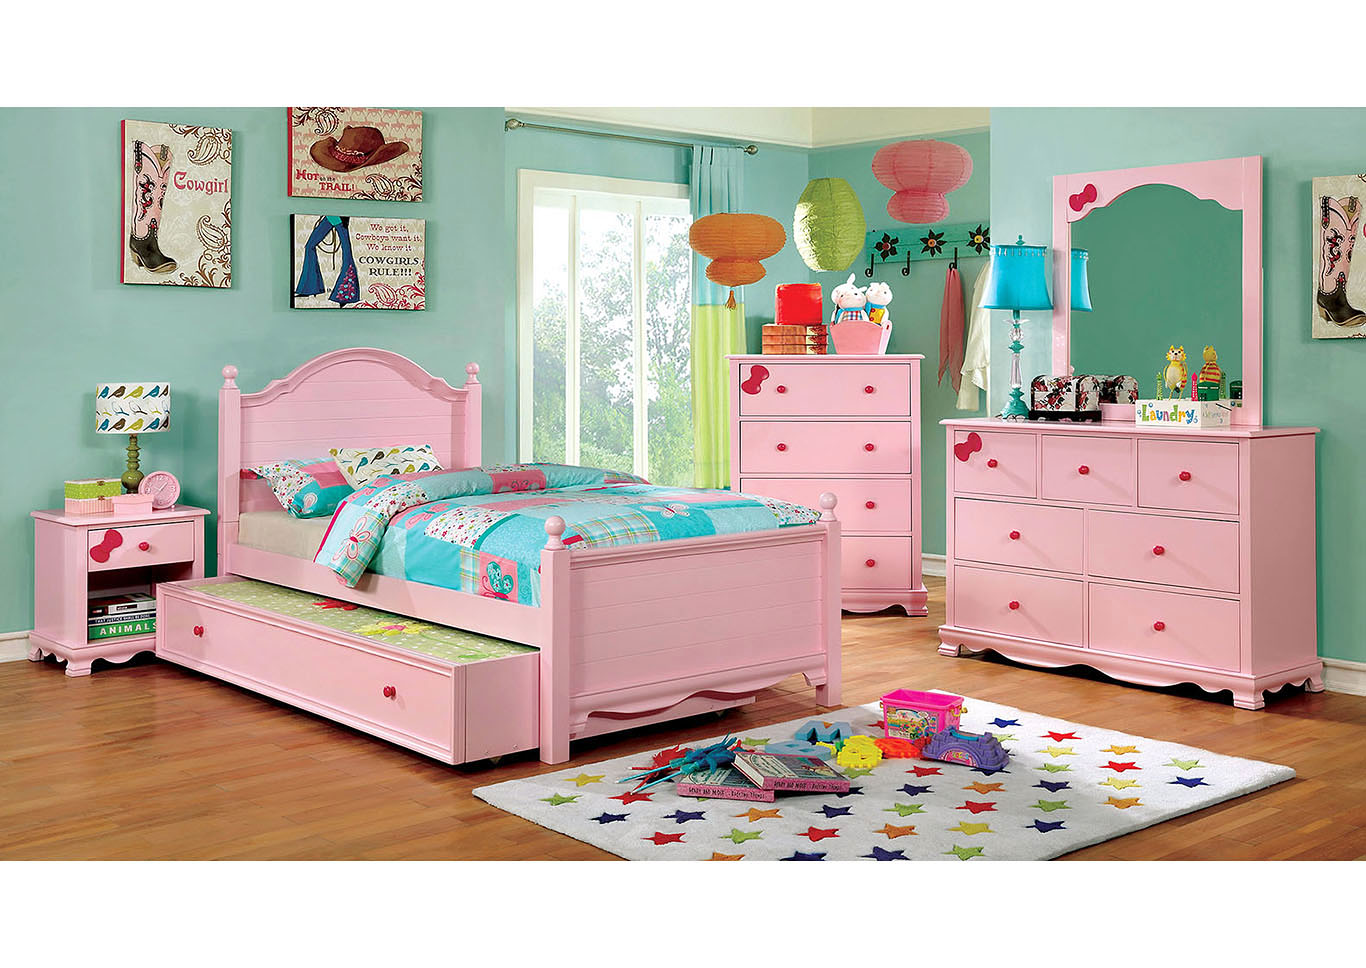 Beds To Go Dani Pink Twin Platform Bed